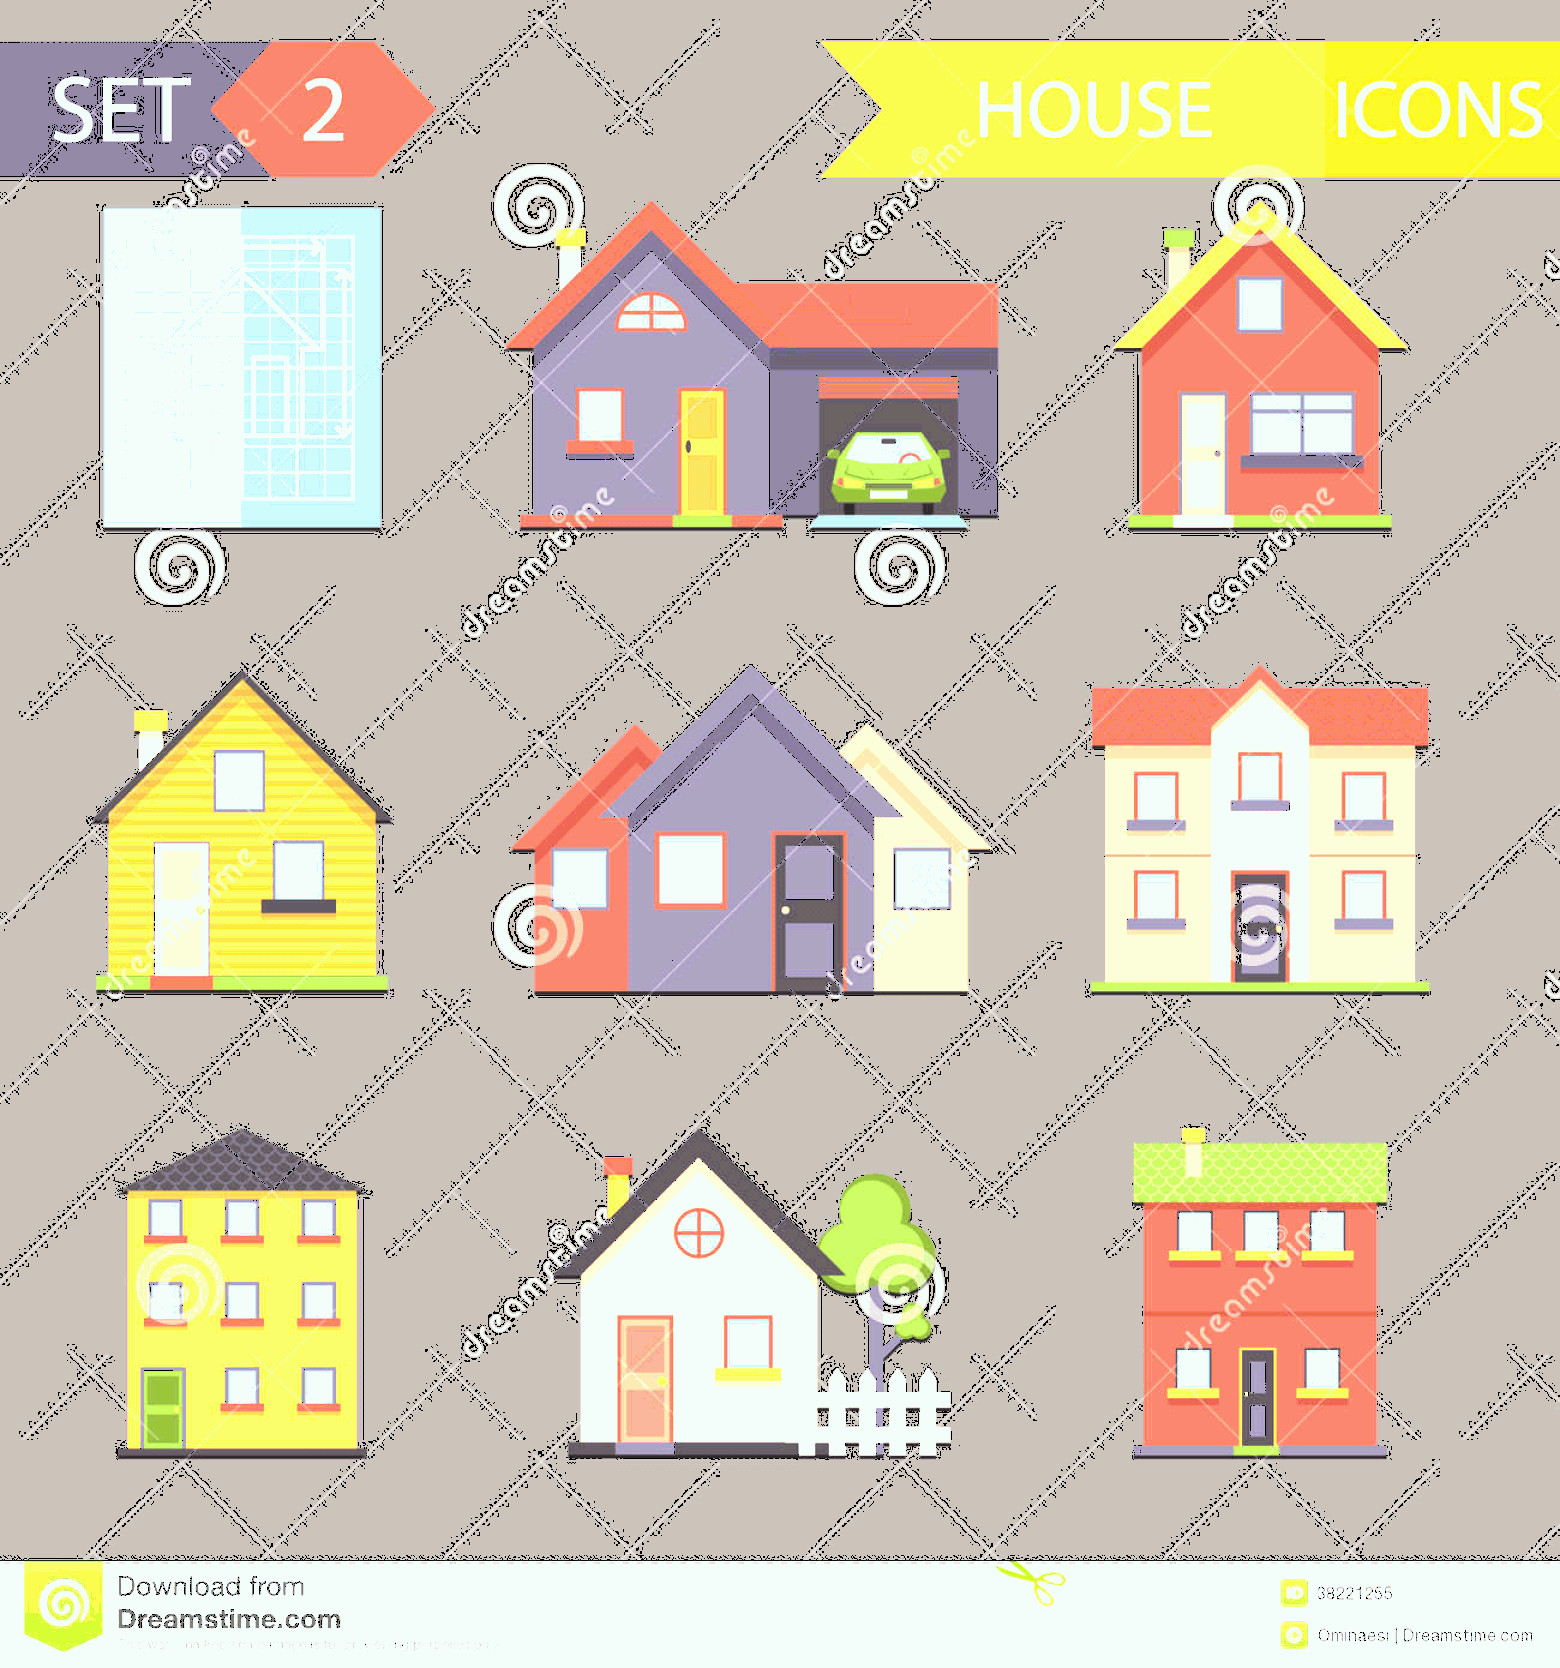 Flat Vector House: Royalty Free Stock Photo Retro Flat House Icons Symbols Set Vector Image